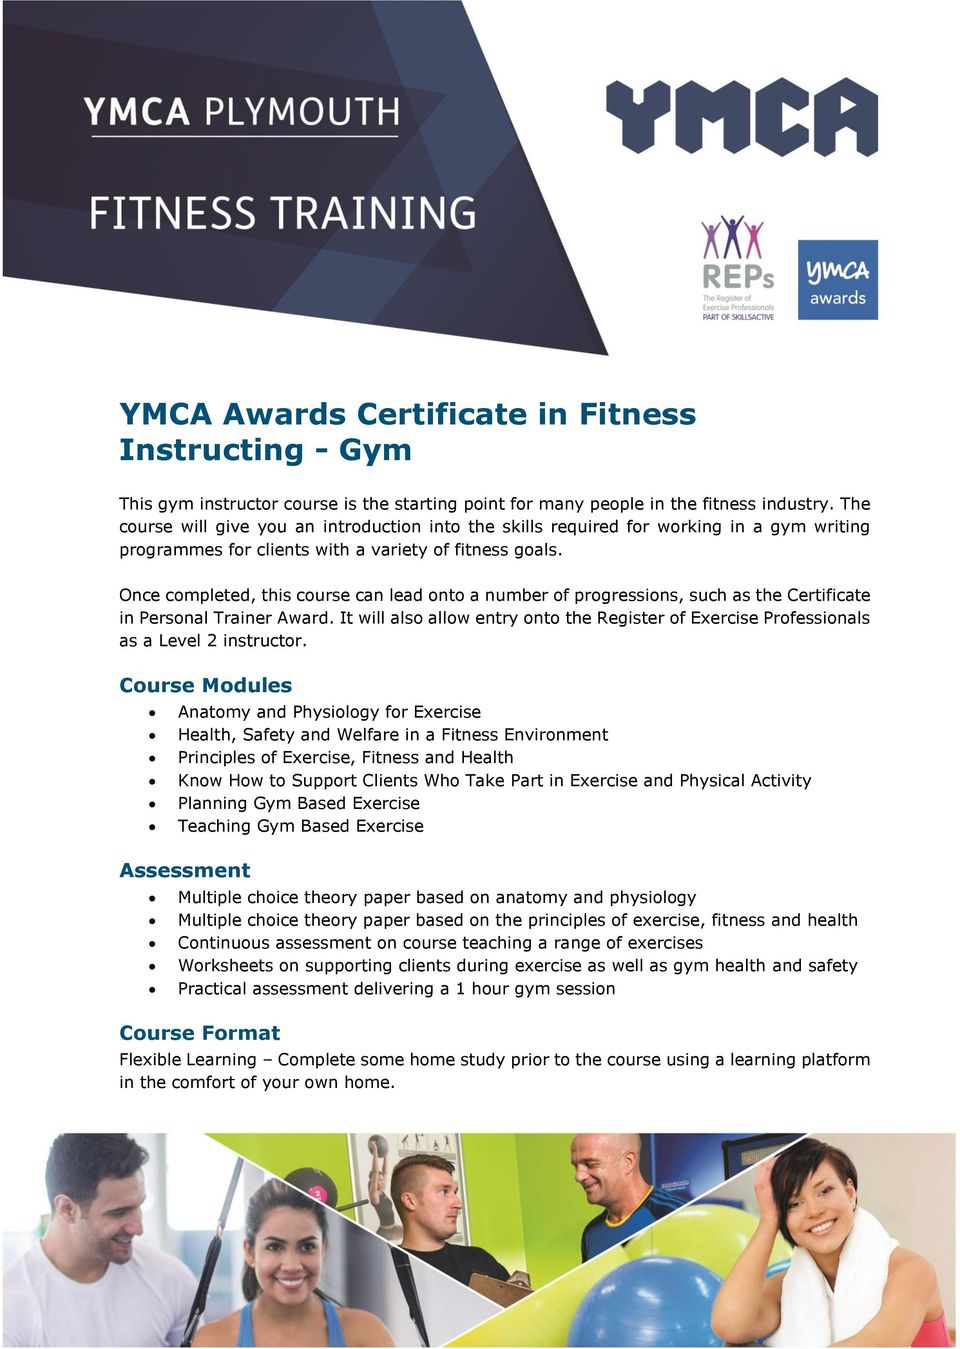 Once completed, this course can lead onto a number of progressions, such as the Certificate in Personal Trainer Award.